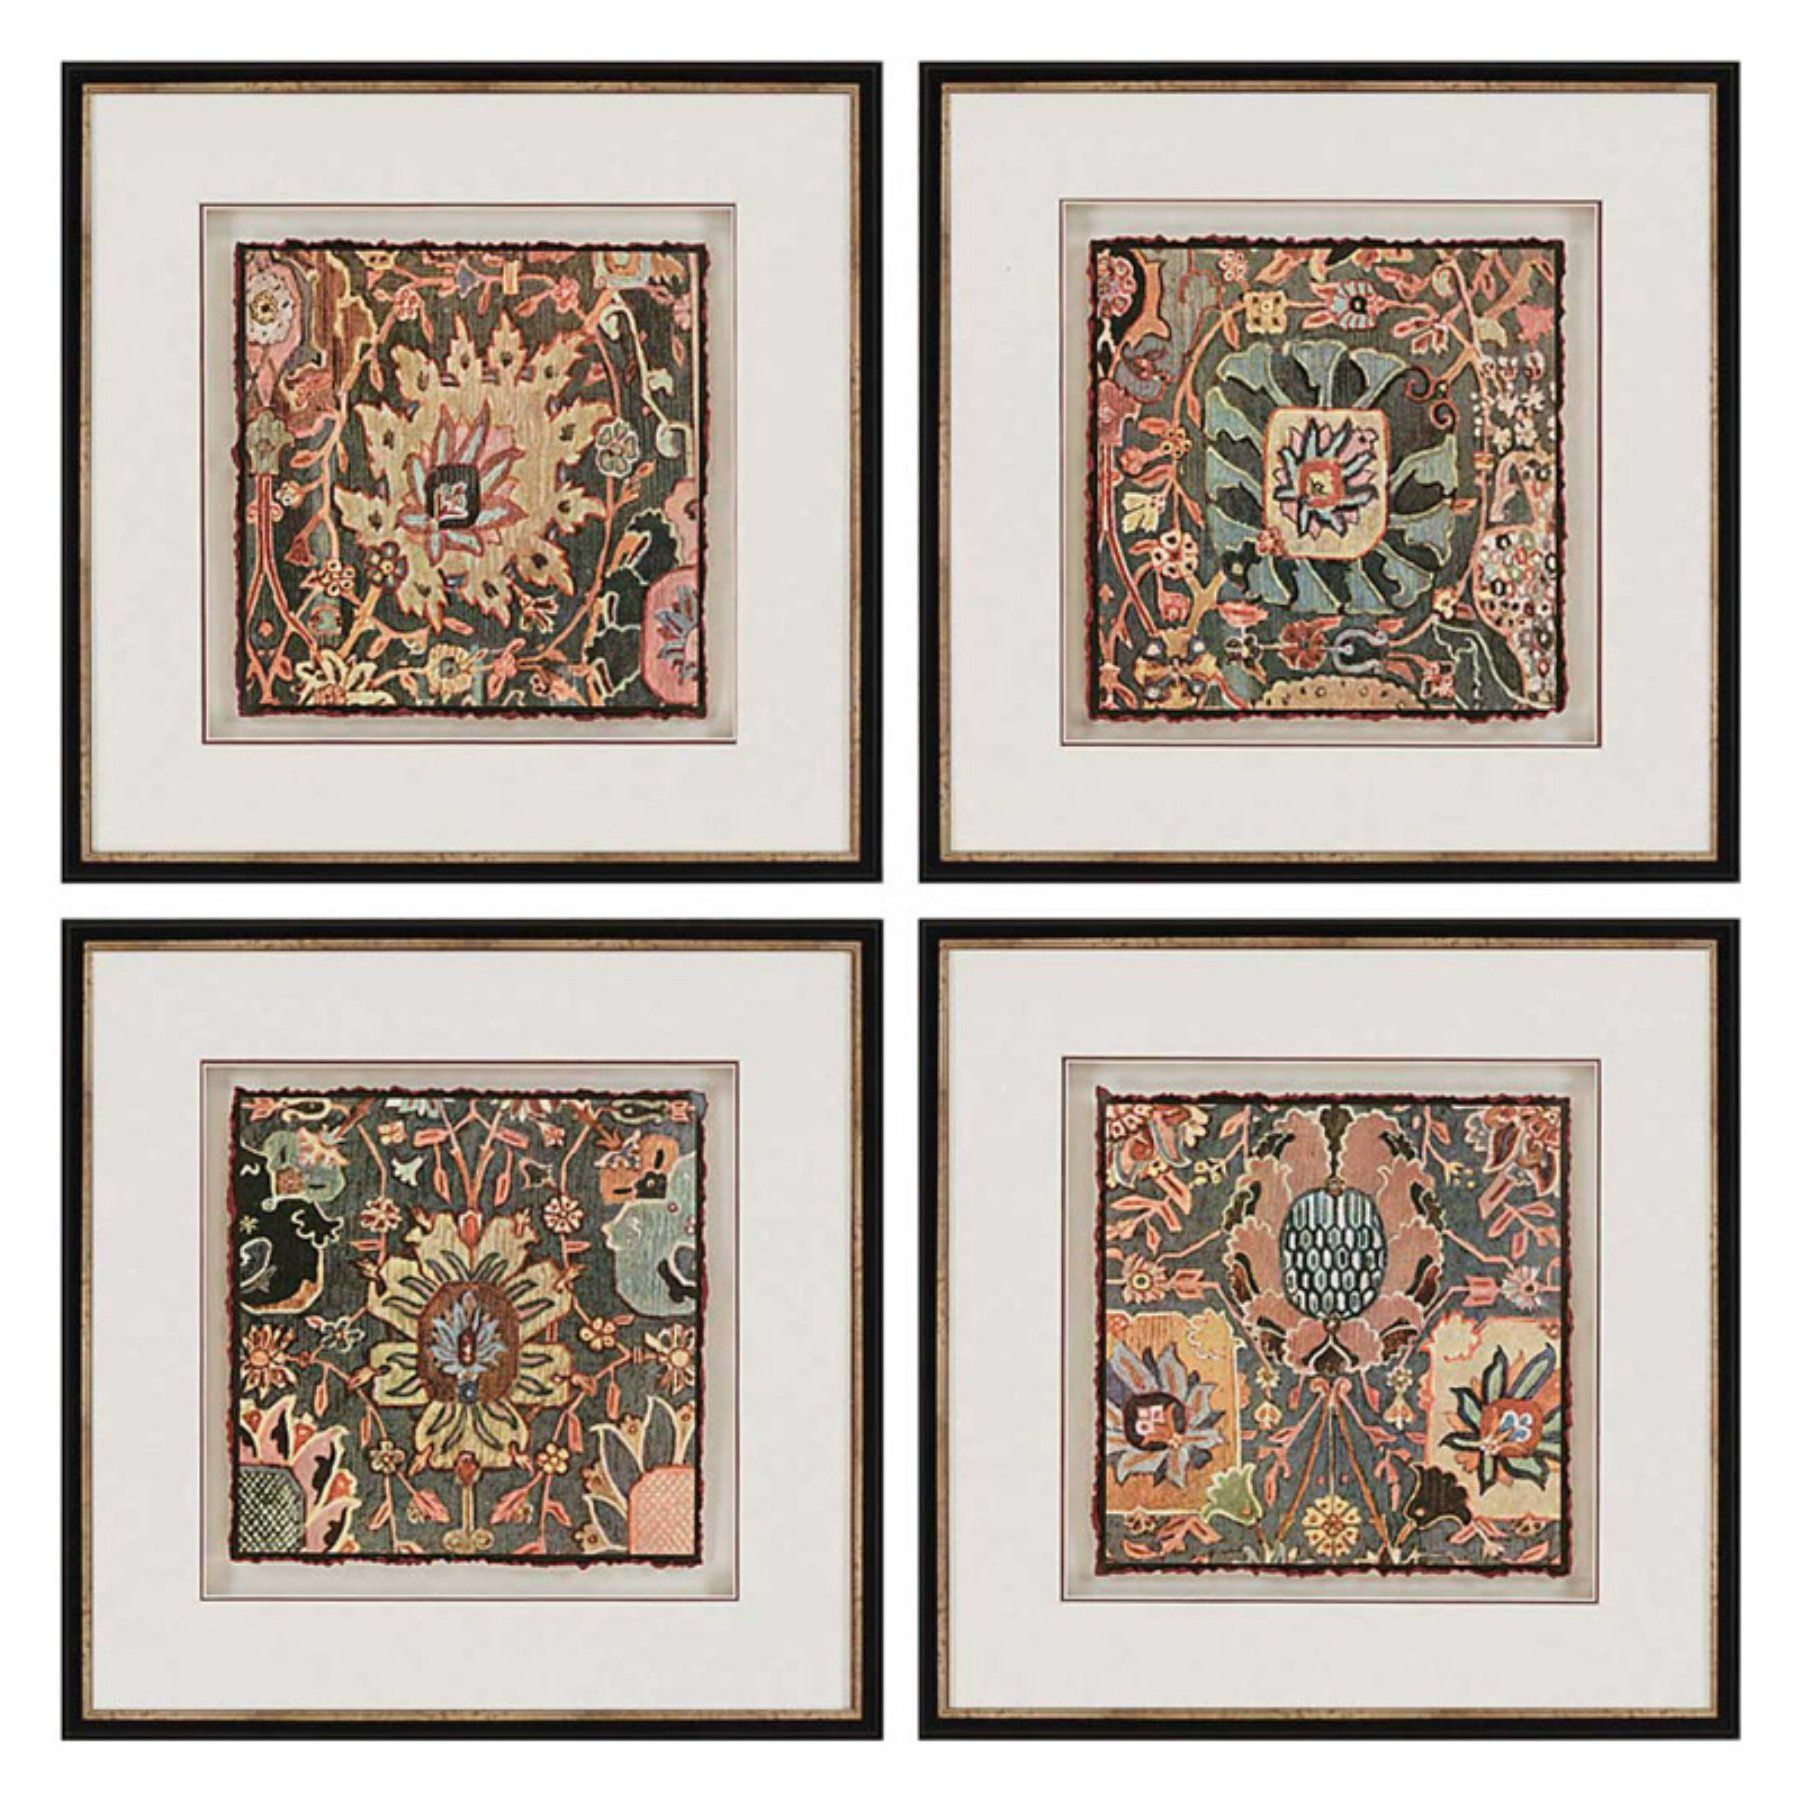 Paragon Decor Persian Carpet Framed Wall Art - Set of 4 - 7703 ...